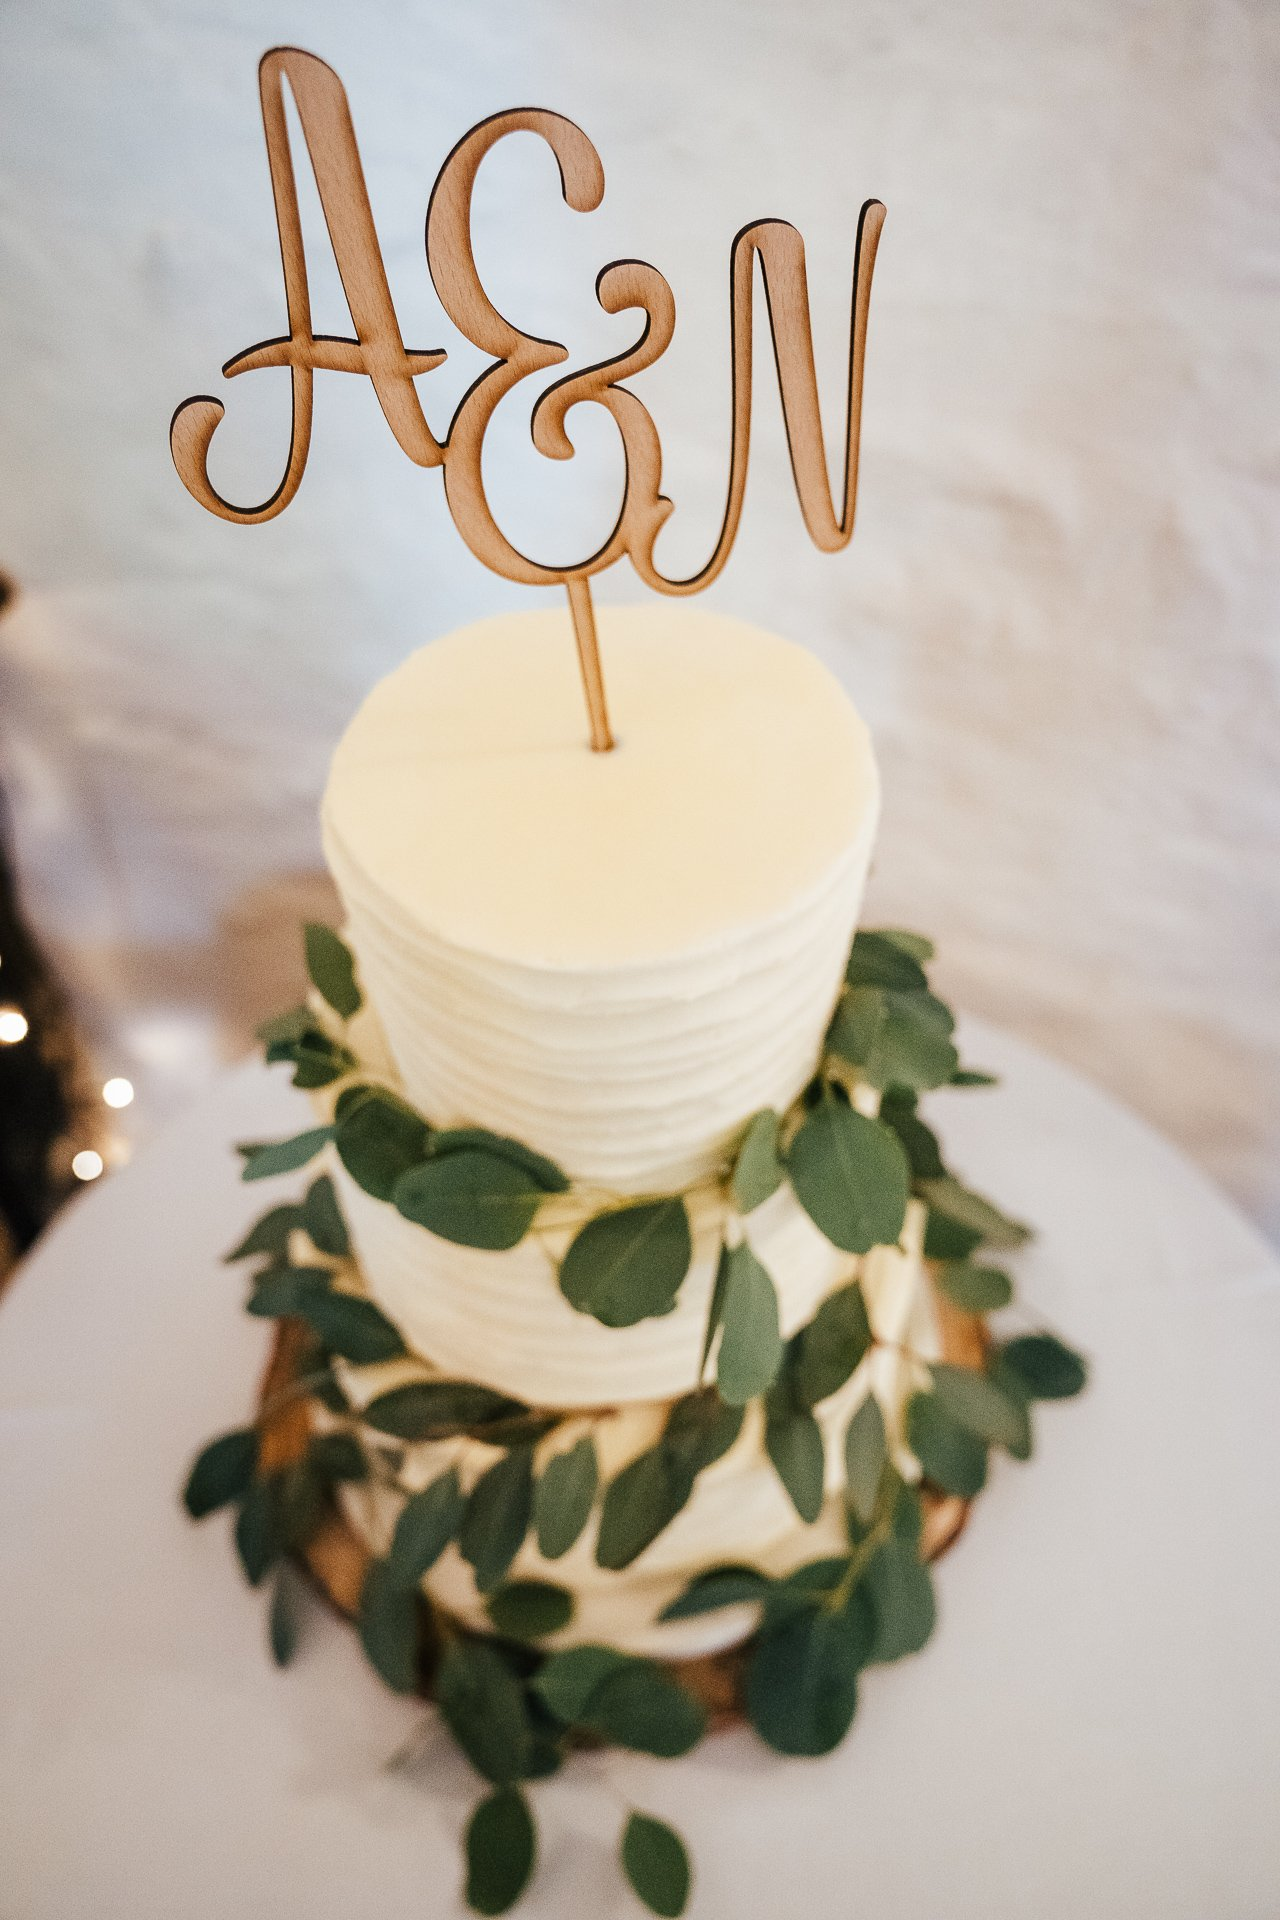 Simple cream butter cream decorated wedding cake with A & N cake topper